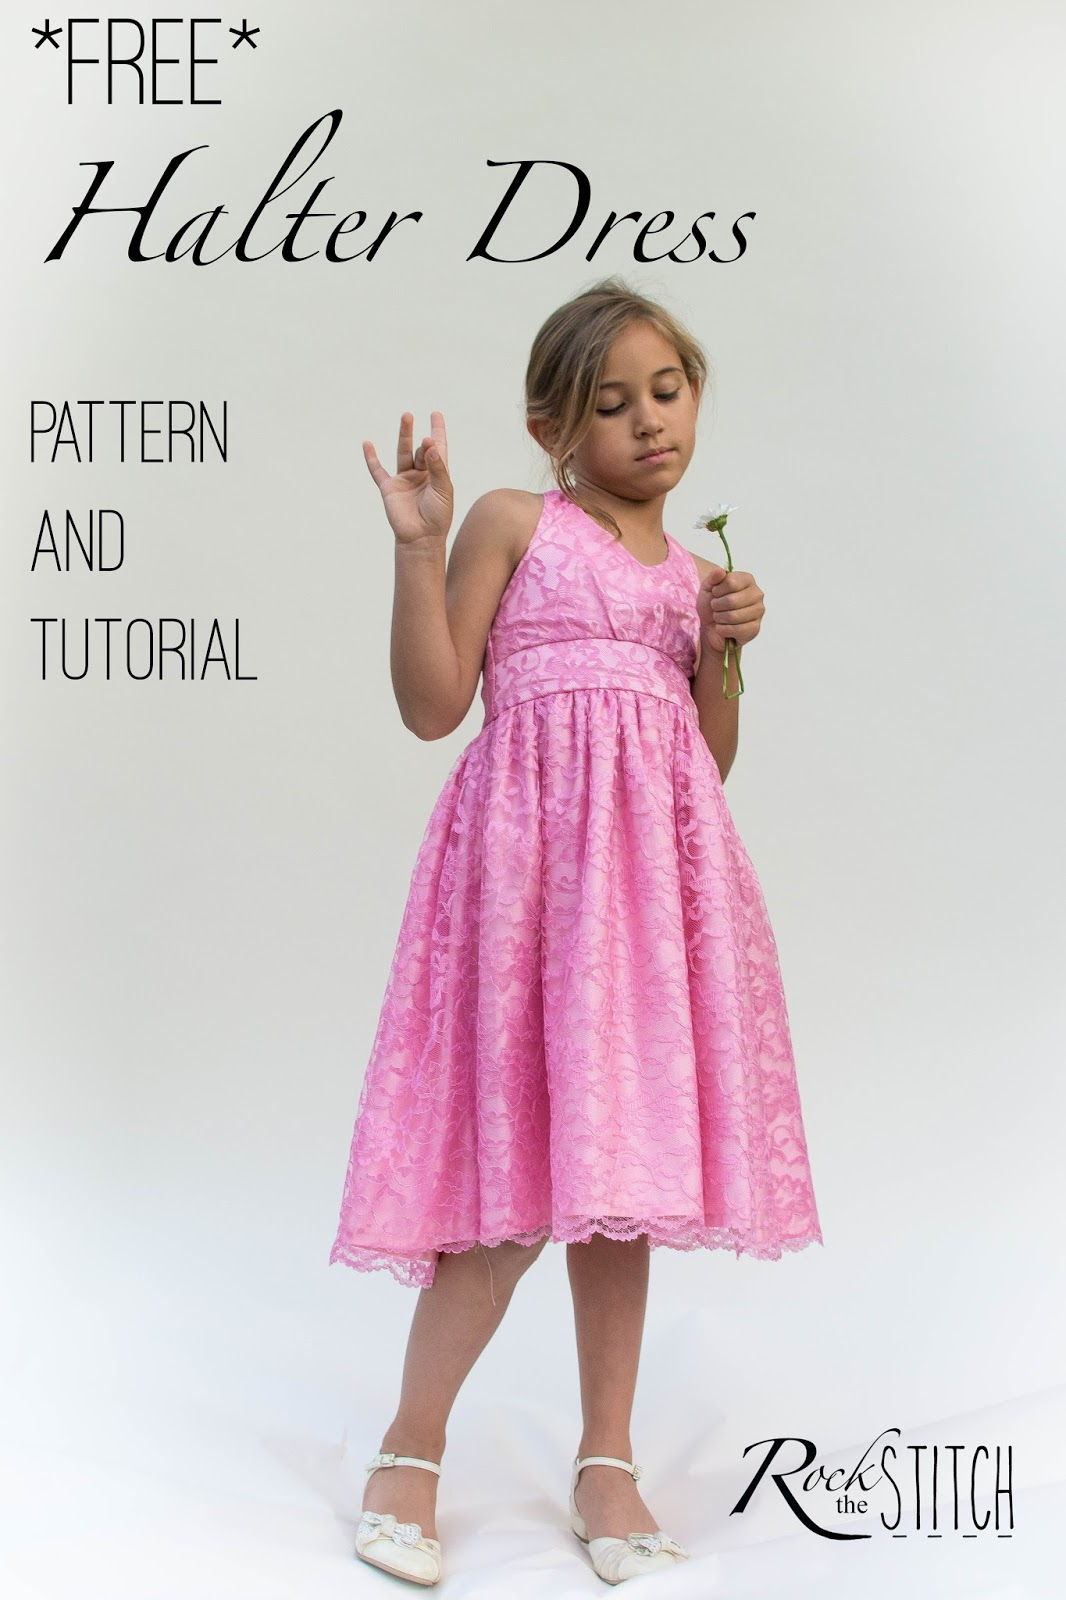 Rock the stitch free halter dress pattern and tutorial free halter dress pattern and tutorial jeuxipadfo Choice Image